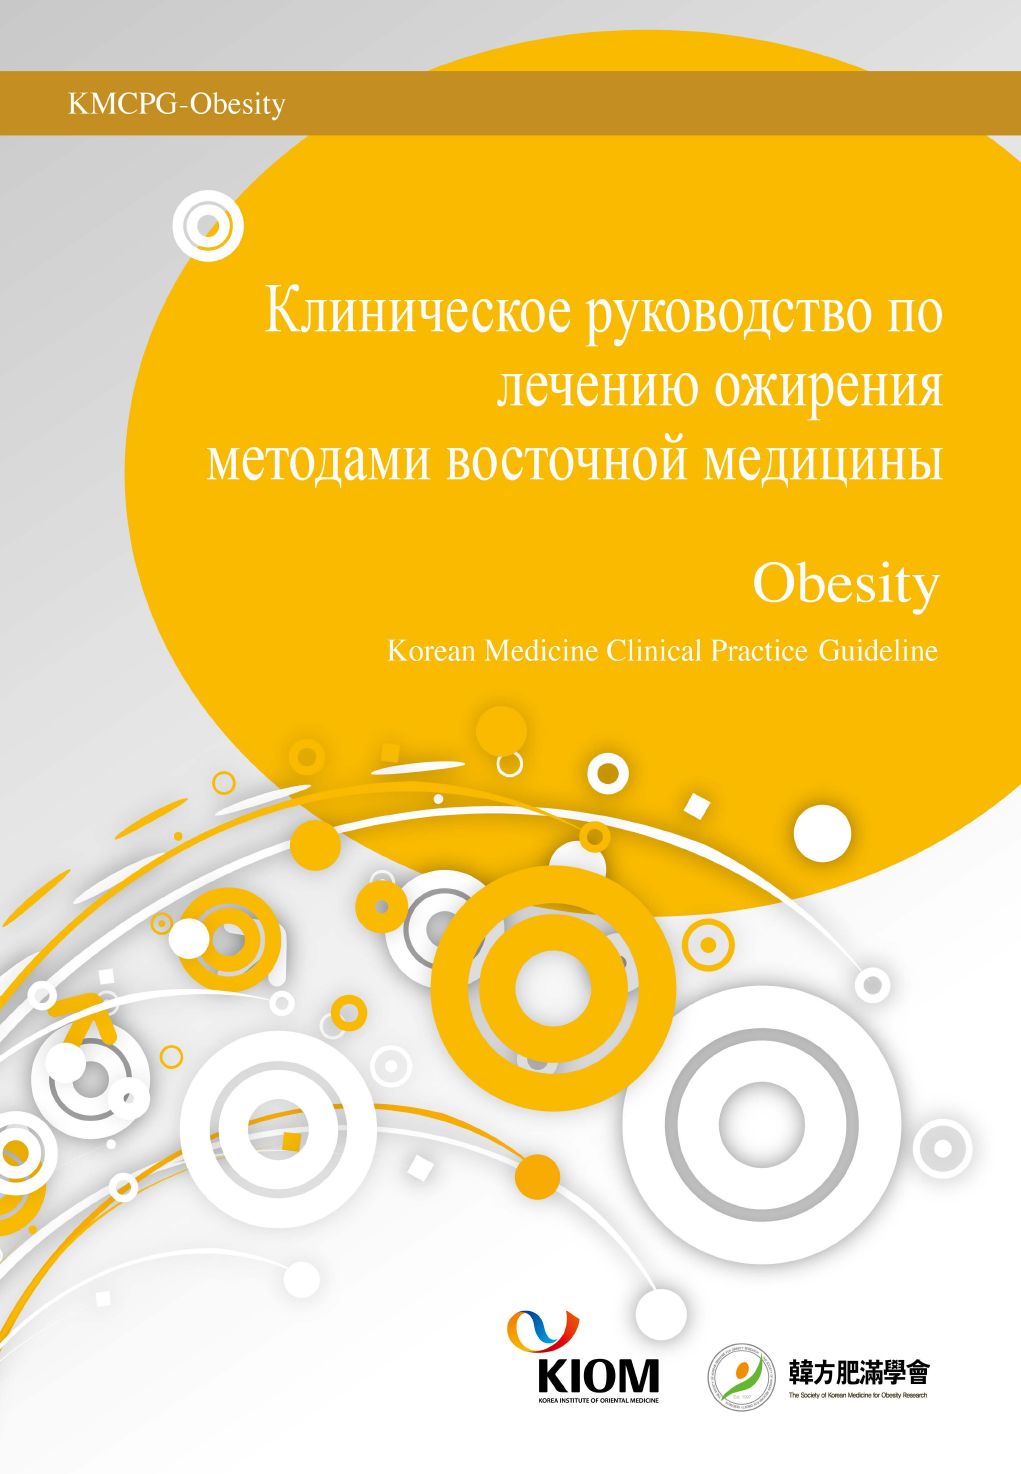 KM Clinical Practice Guideline on Obesity - Russian Version